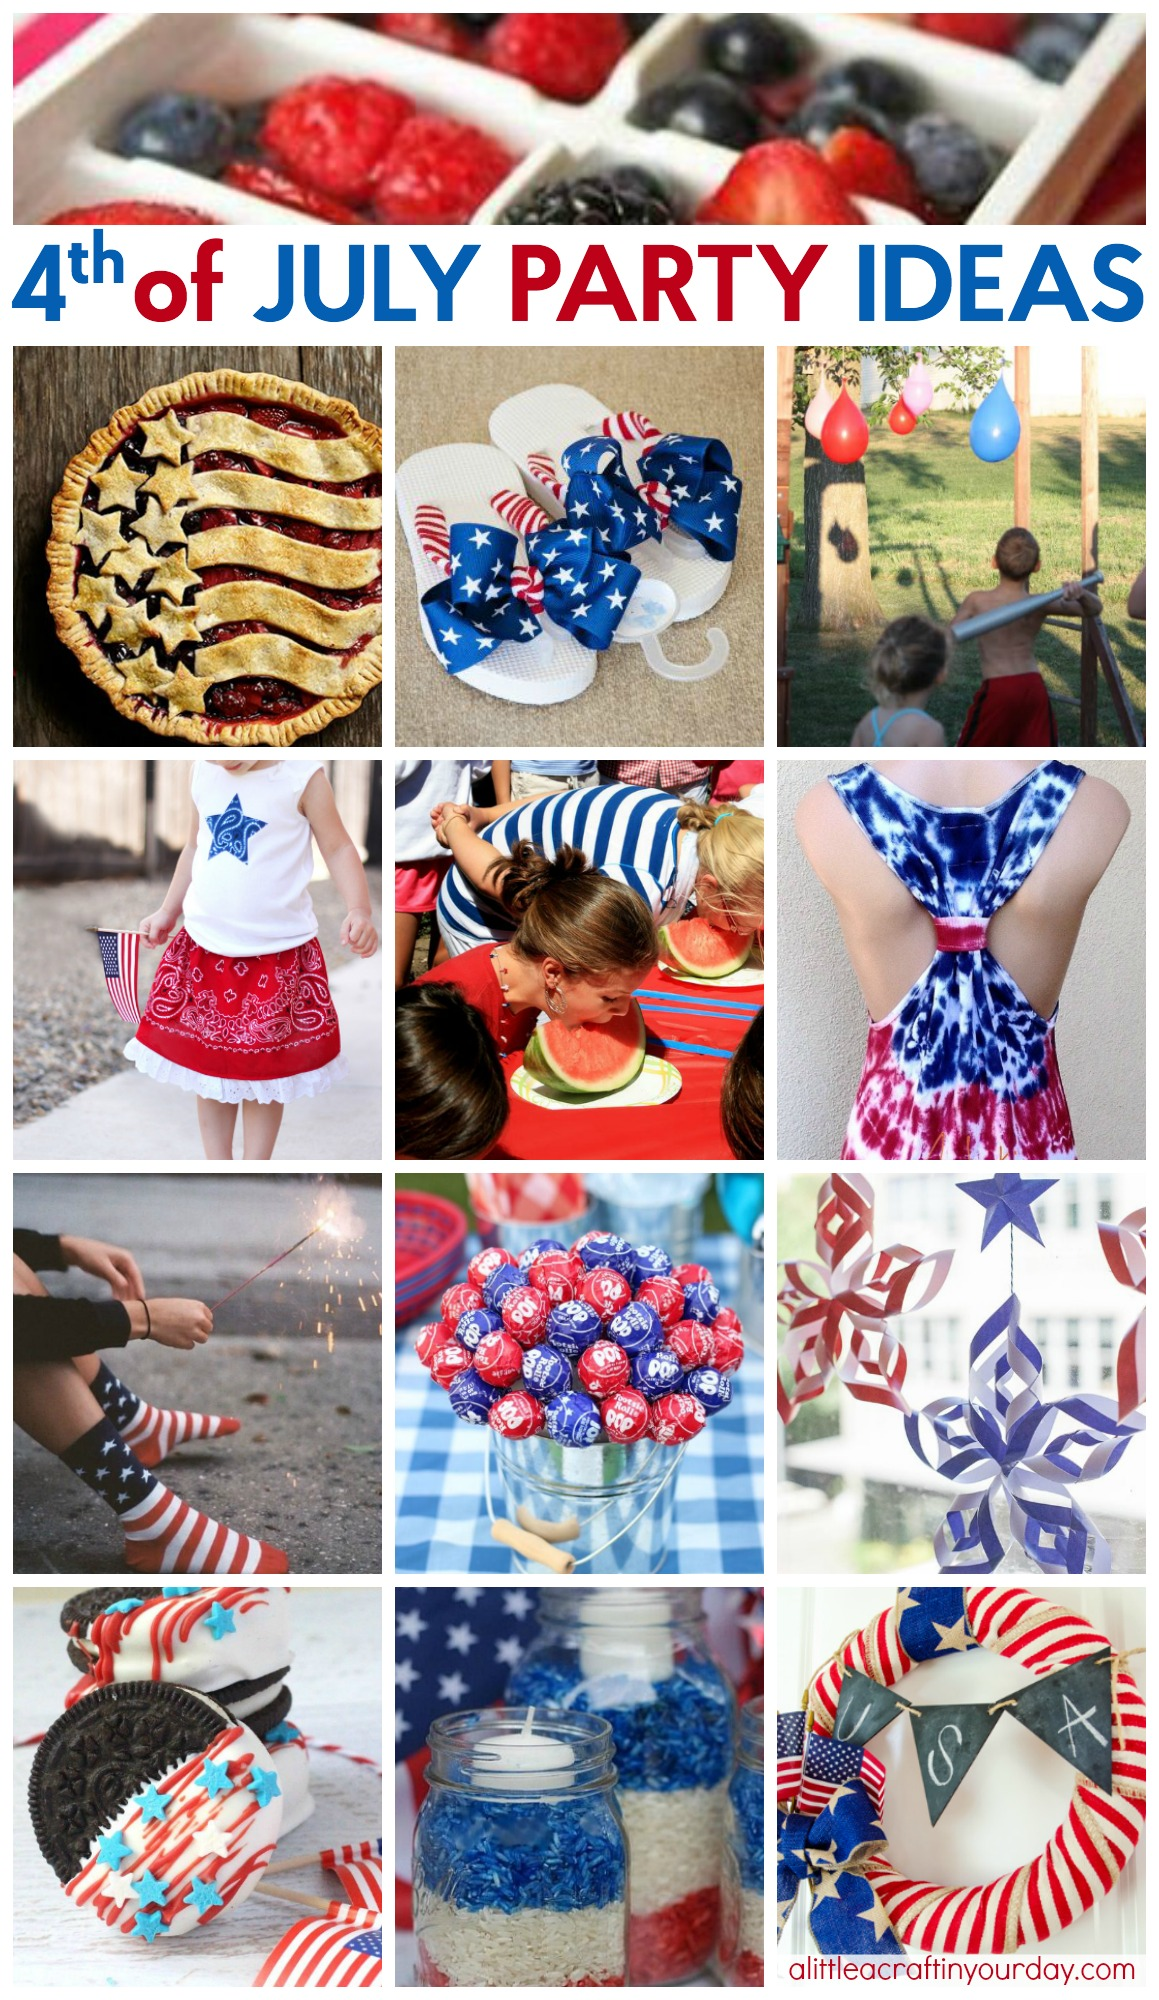 Fourth of July Gifts Celebrate Independence Day with colorful 4th of July gifts perfect for the beach or BBQ grill. Personalized beach chairs and beach towels for kids and adults brighten up a .